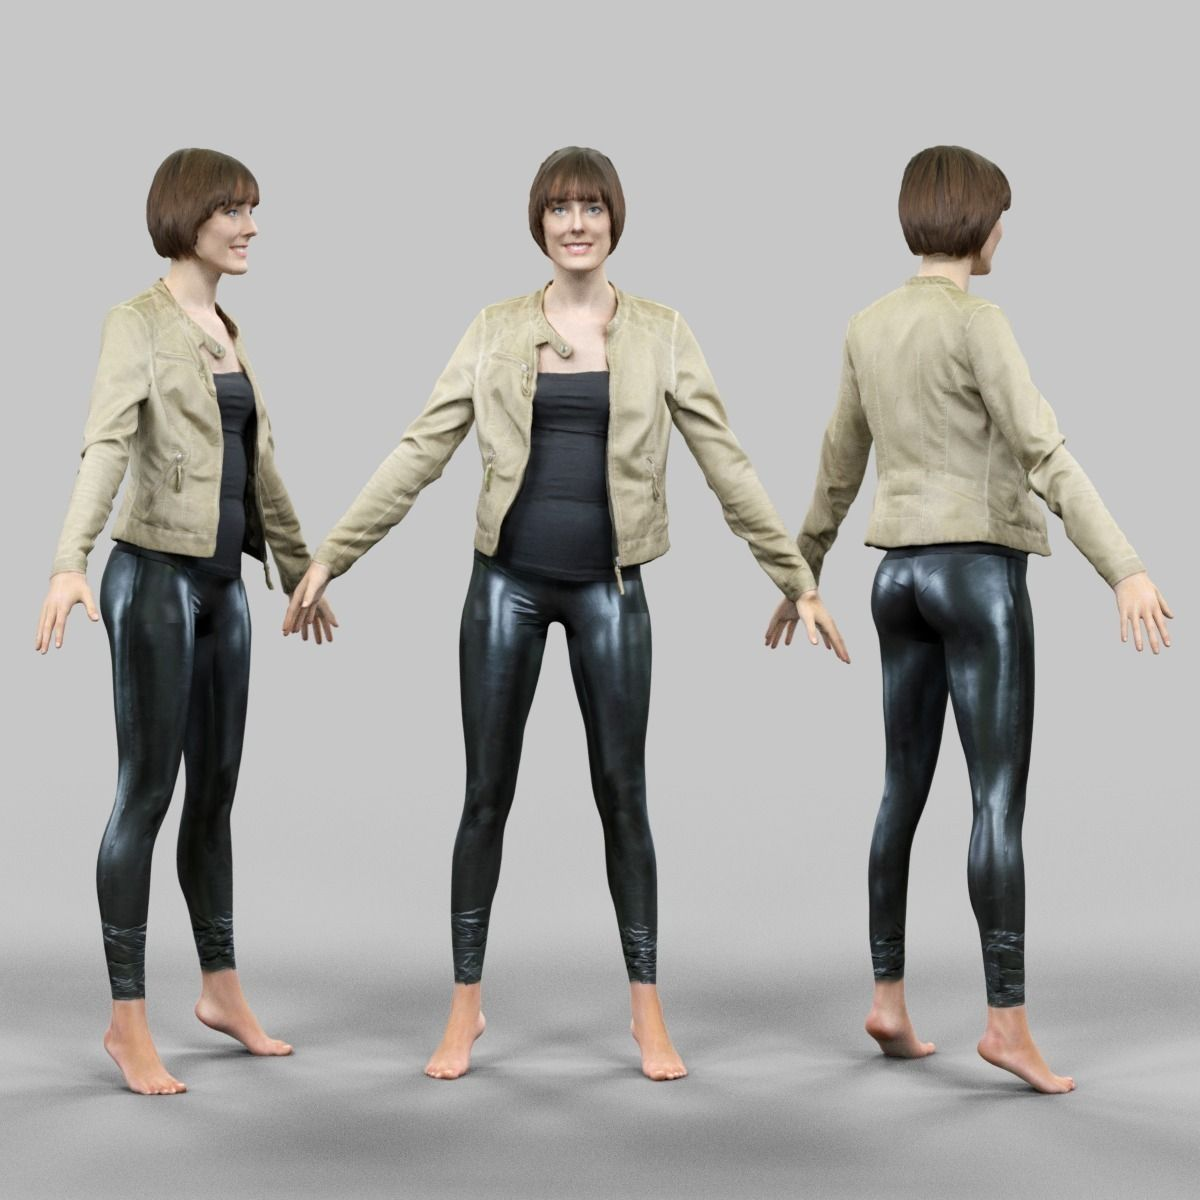 3d Model 10 A Pose Rig Ready Female Characters Vr Ar